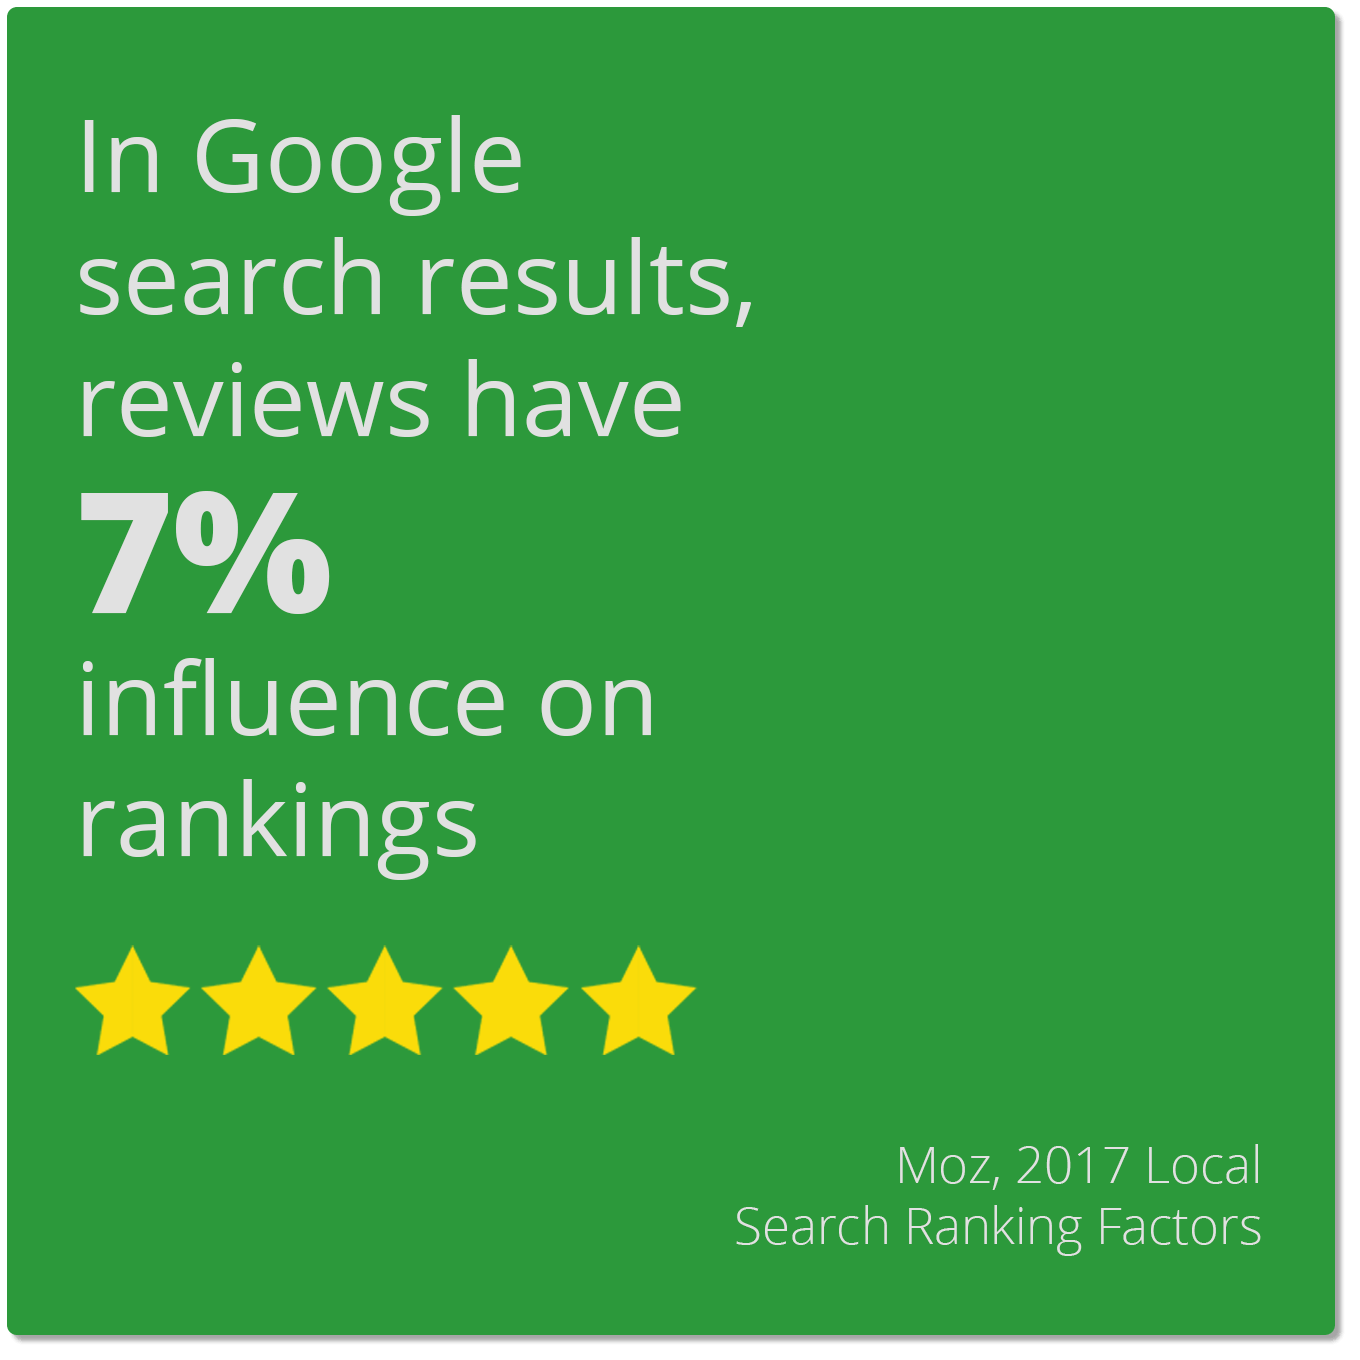 In Google search results, reviews have 7% influence on rankings